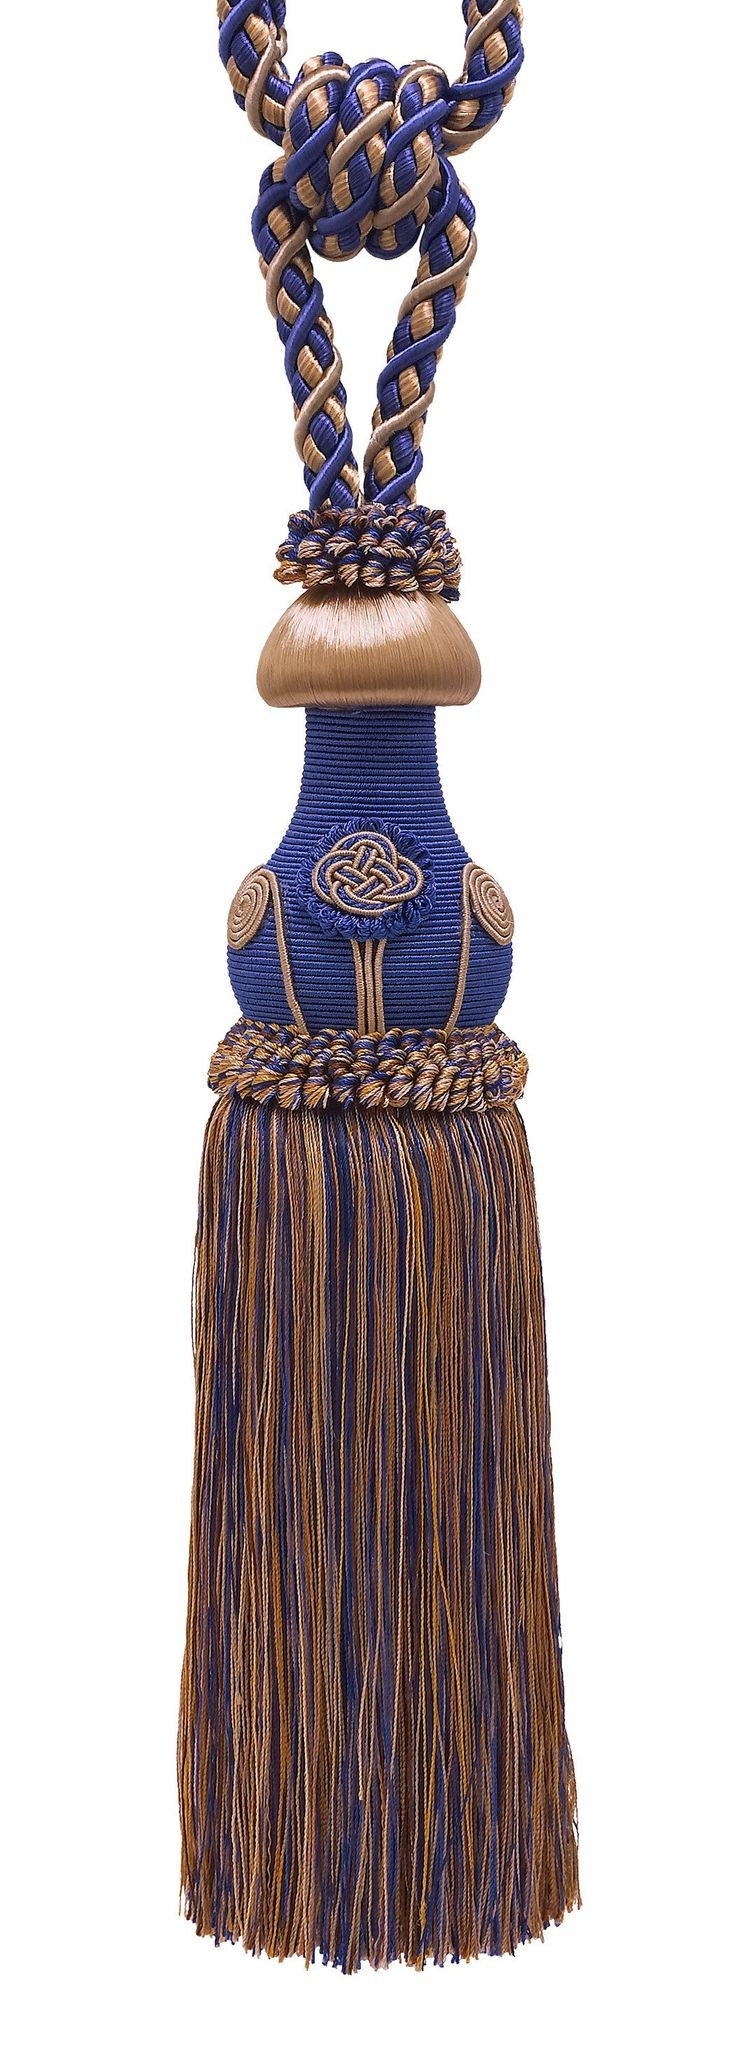 "Decorative Ultramarine Blue, Tan Curtain & Drapery Tassel Tieback /12"" tassel, 32"" Spread (embrace), 7/16"" Cord, Baroque Collection Style# TBBL-1 Color: NAVY TAUPE 5817"